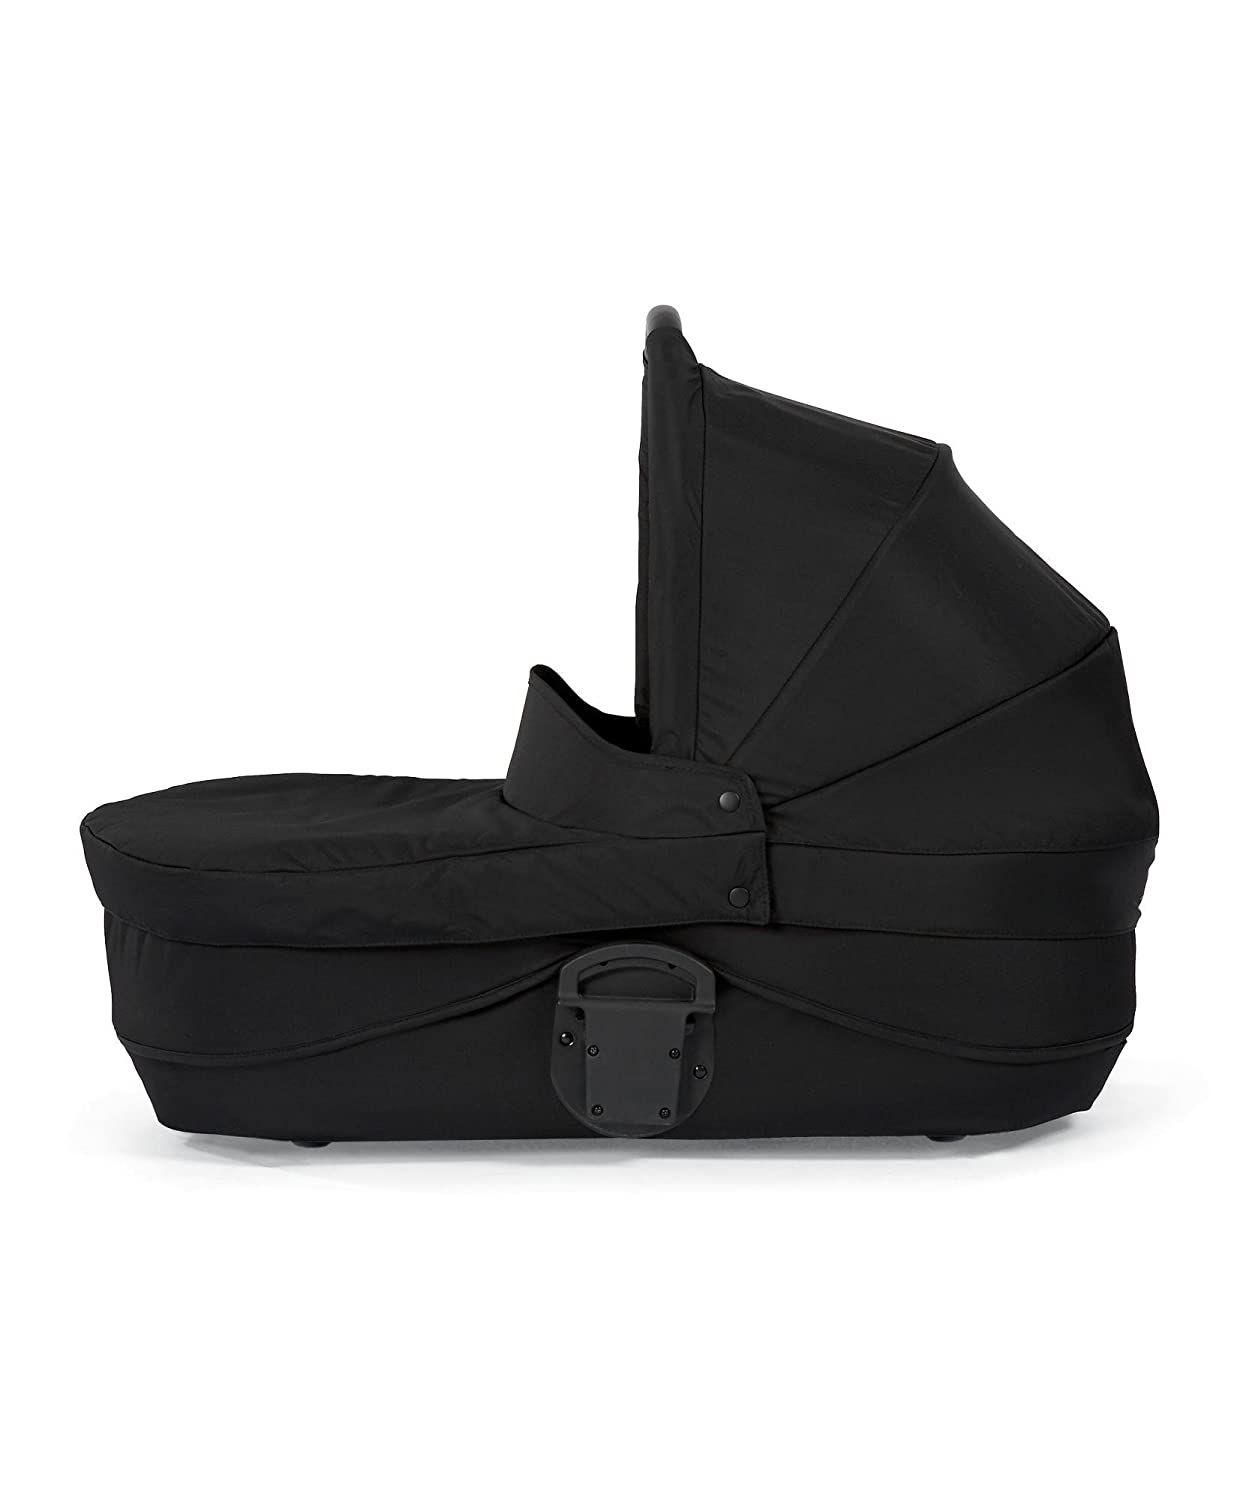 Mamas & Papas Urbo Carrycot - Black 103825302